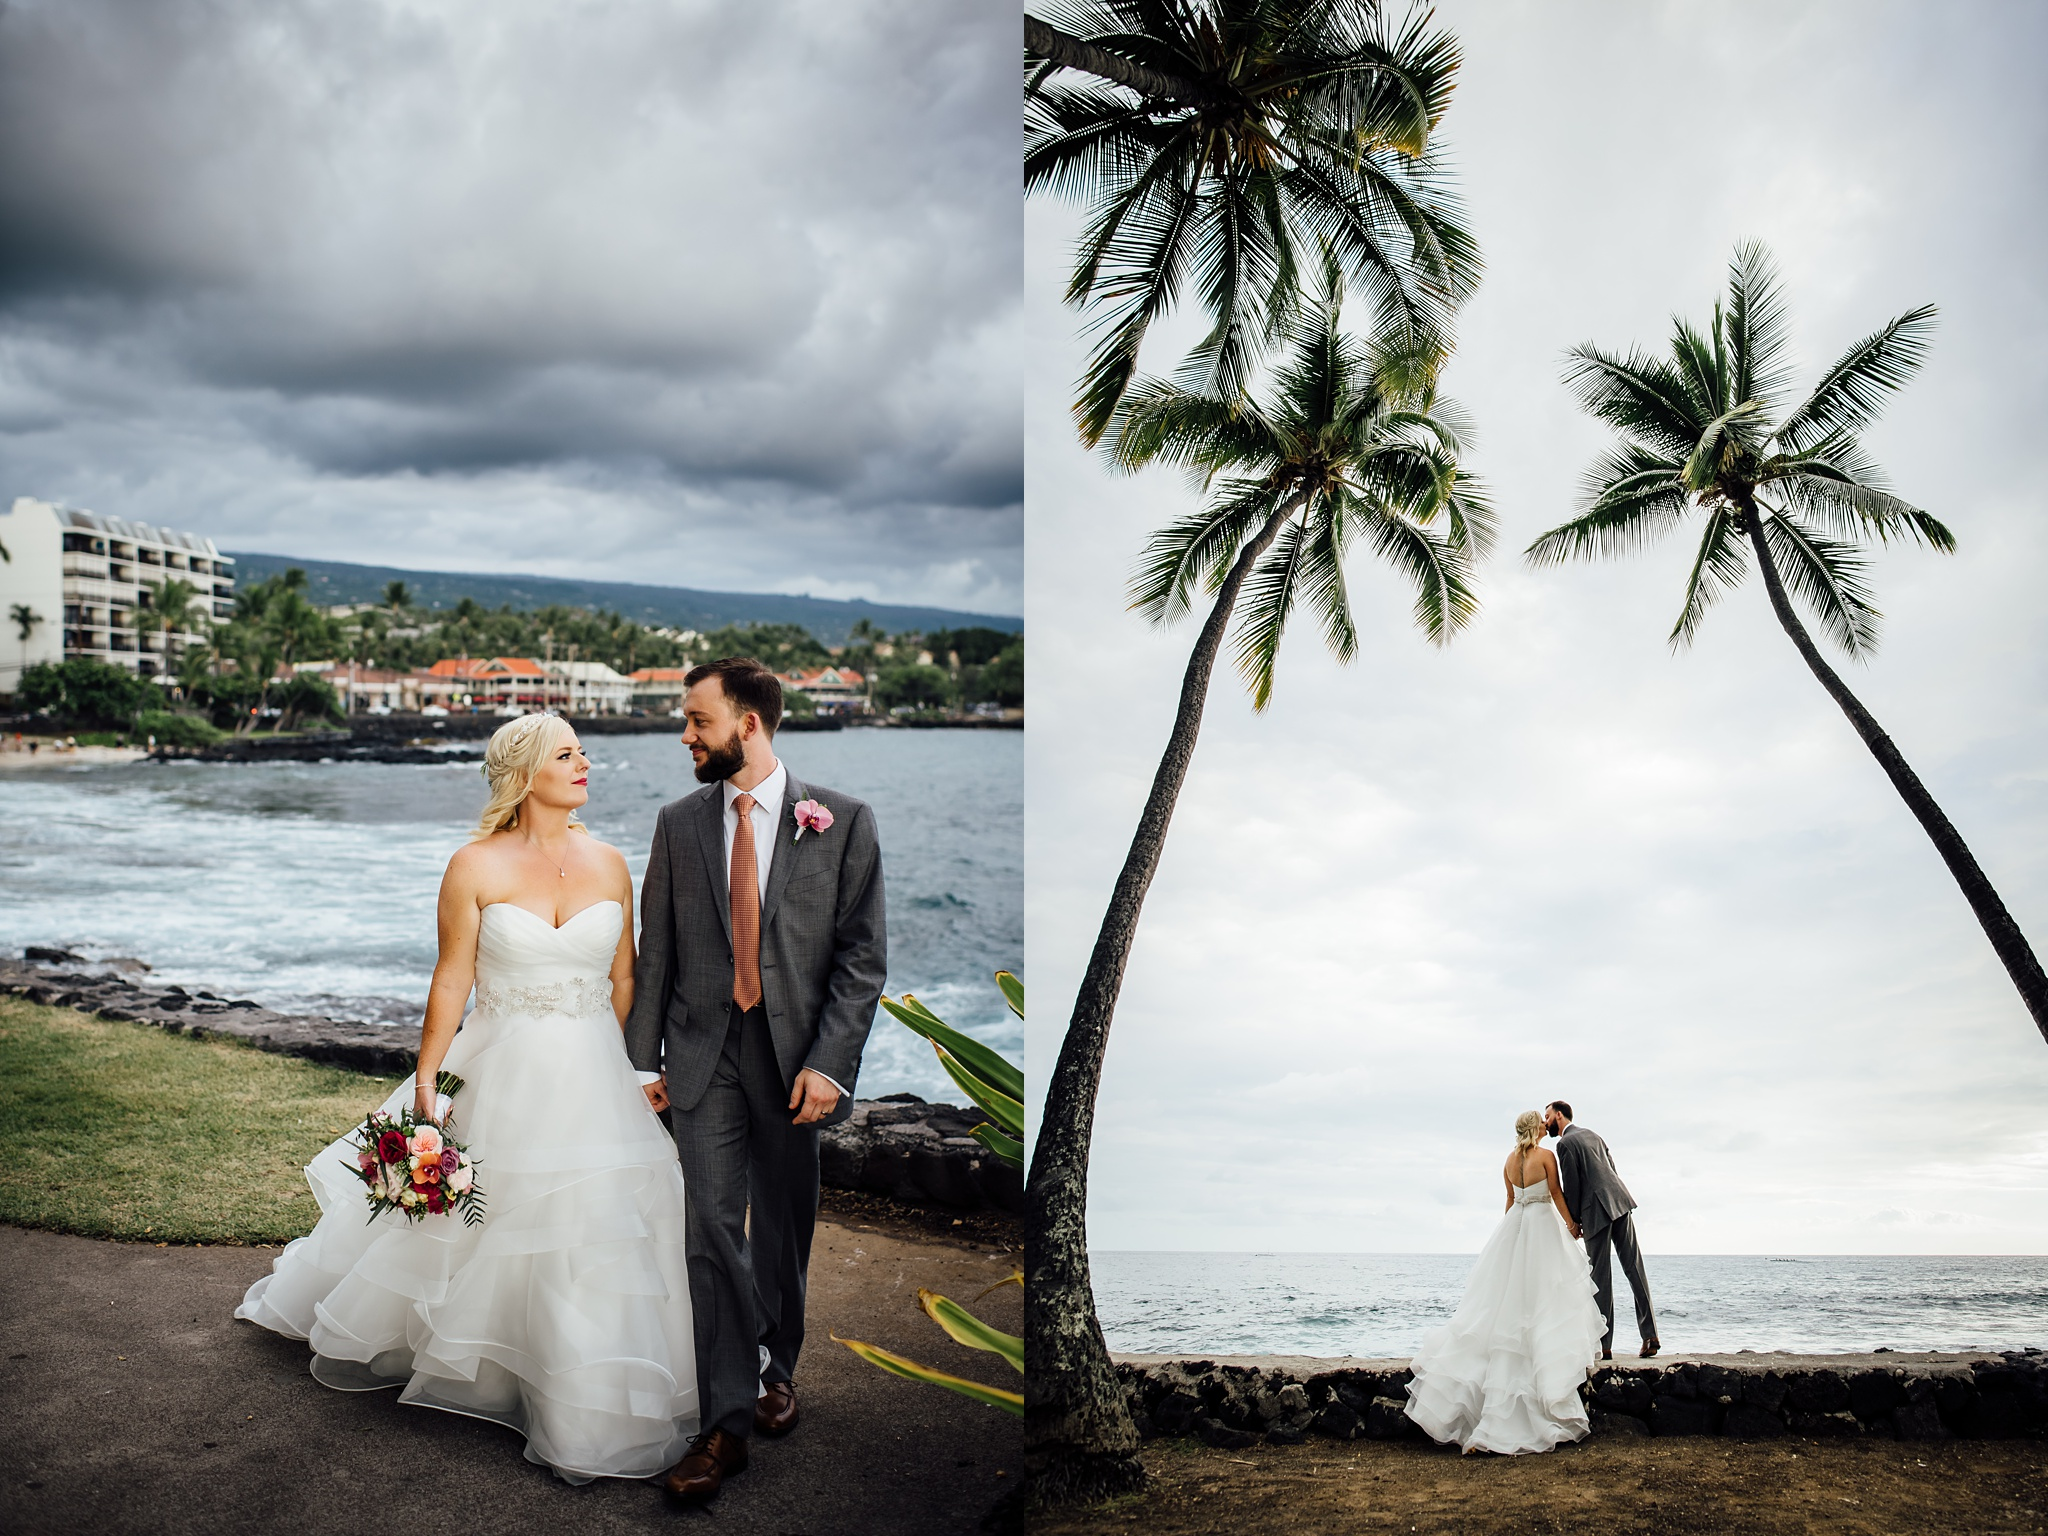 Stormy Wedding Day in Kona